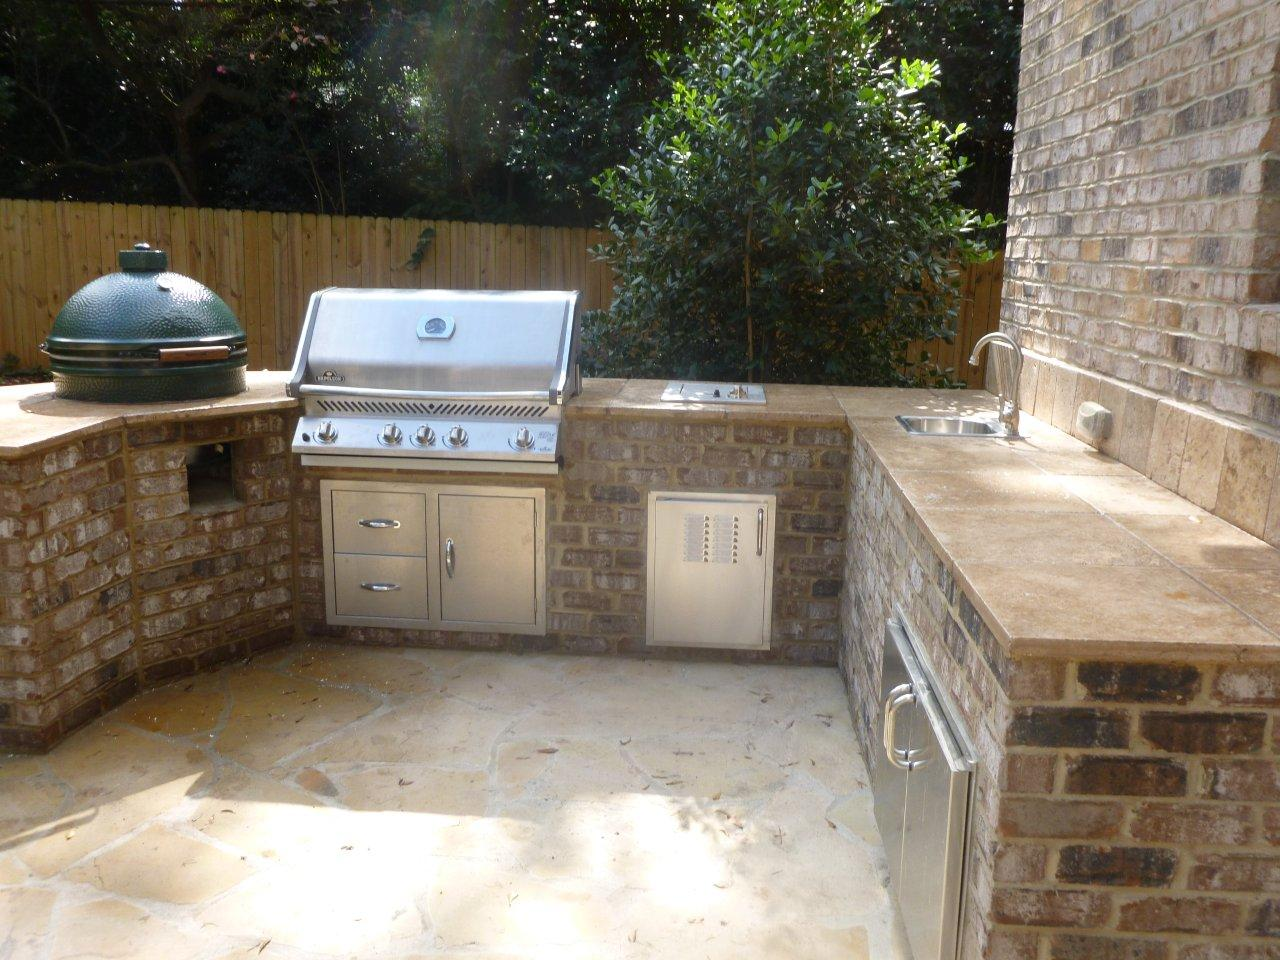 Grill, Travertine Counter, Outdoor Sink, And